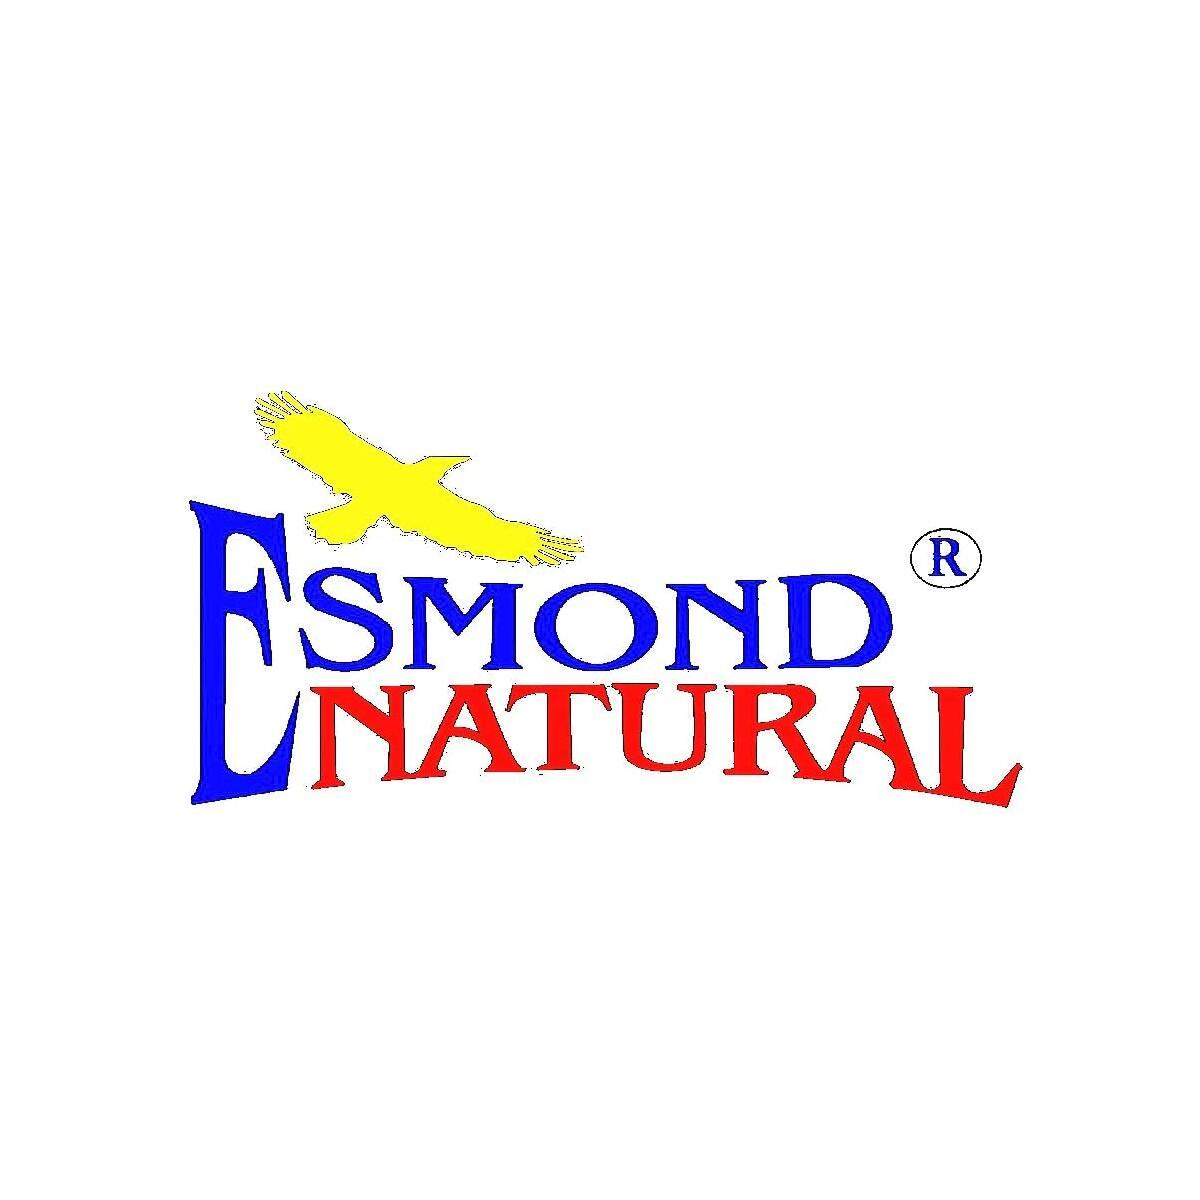 (3 Count, 10% Off) Esmond Natural: ENC Milk Minerals Complex (Bone Support), GMP, Natural Product Assn Certified, Made in USA-1500mg, 270 Tablets